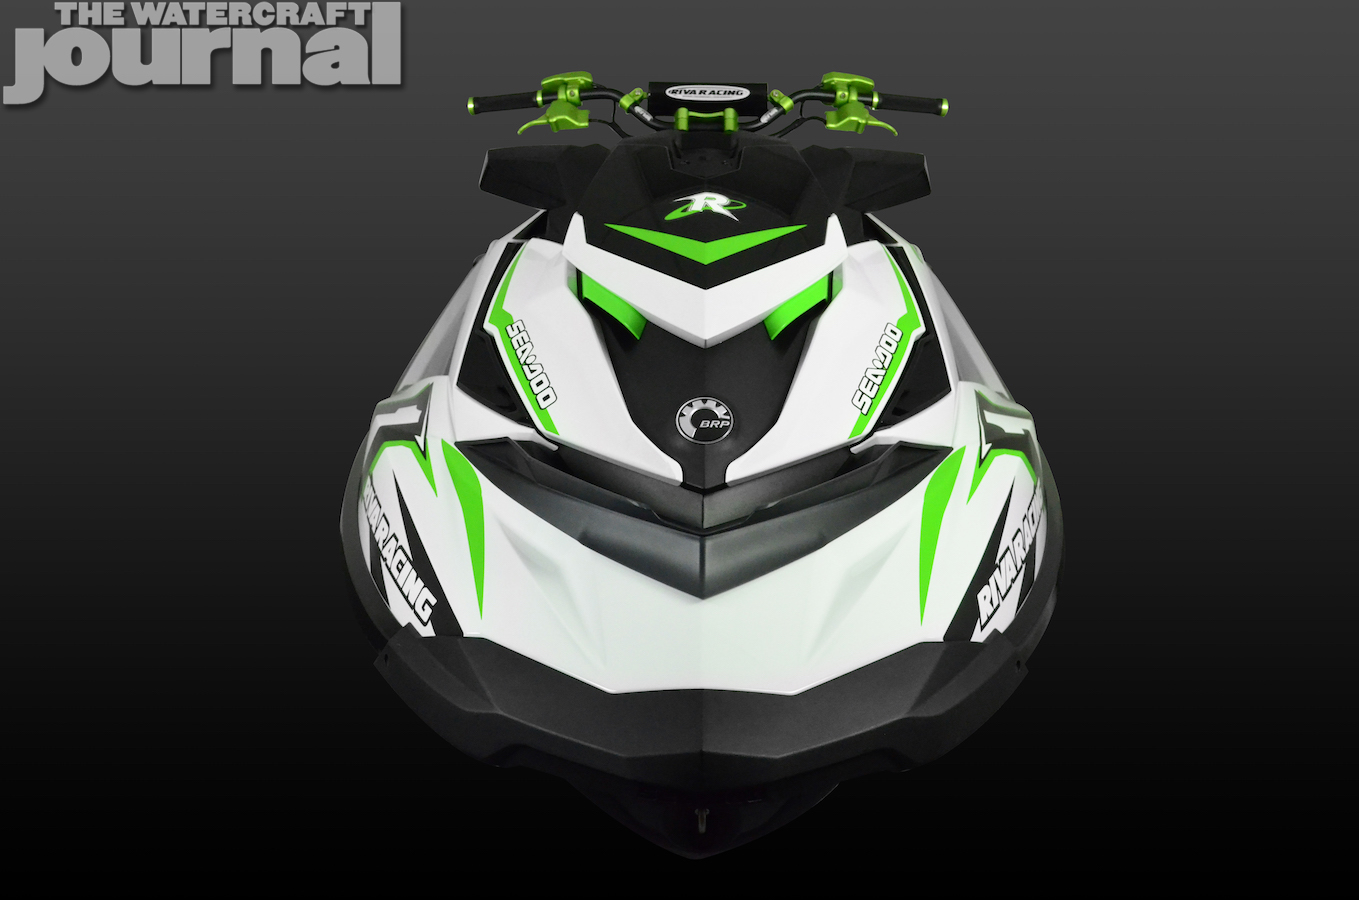 Green Seadoo RXP front